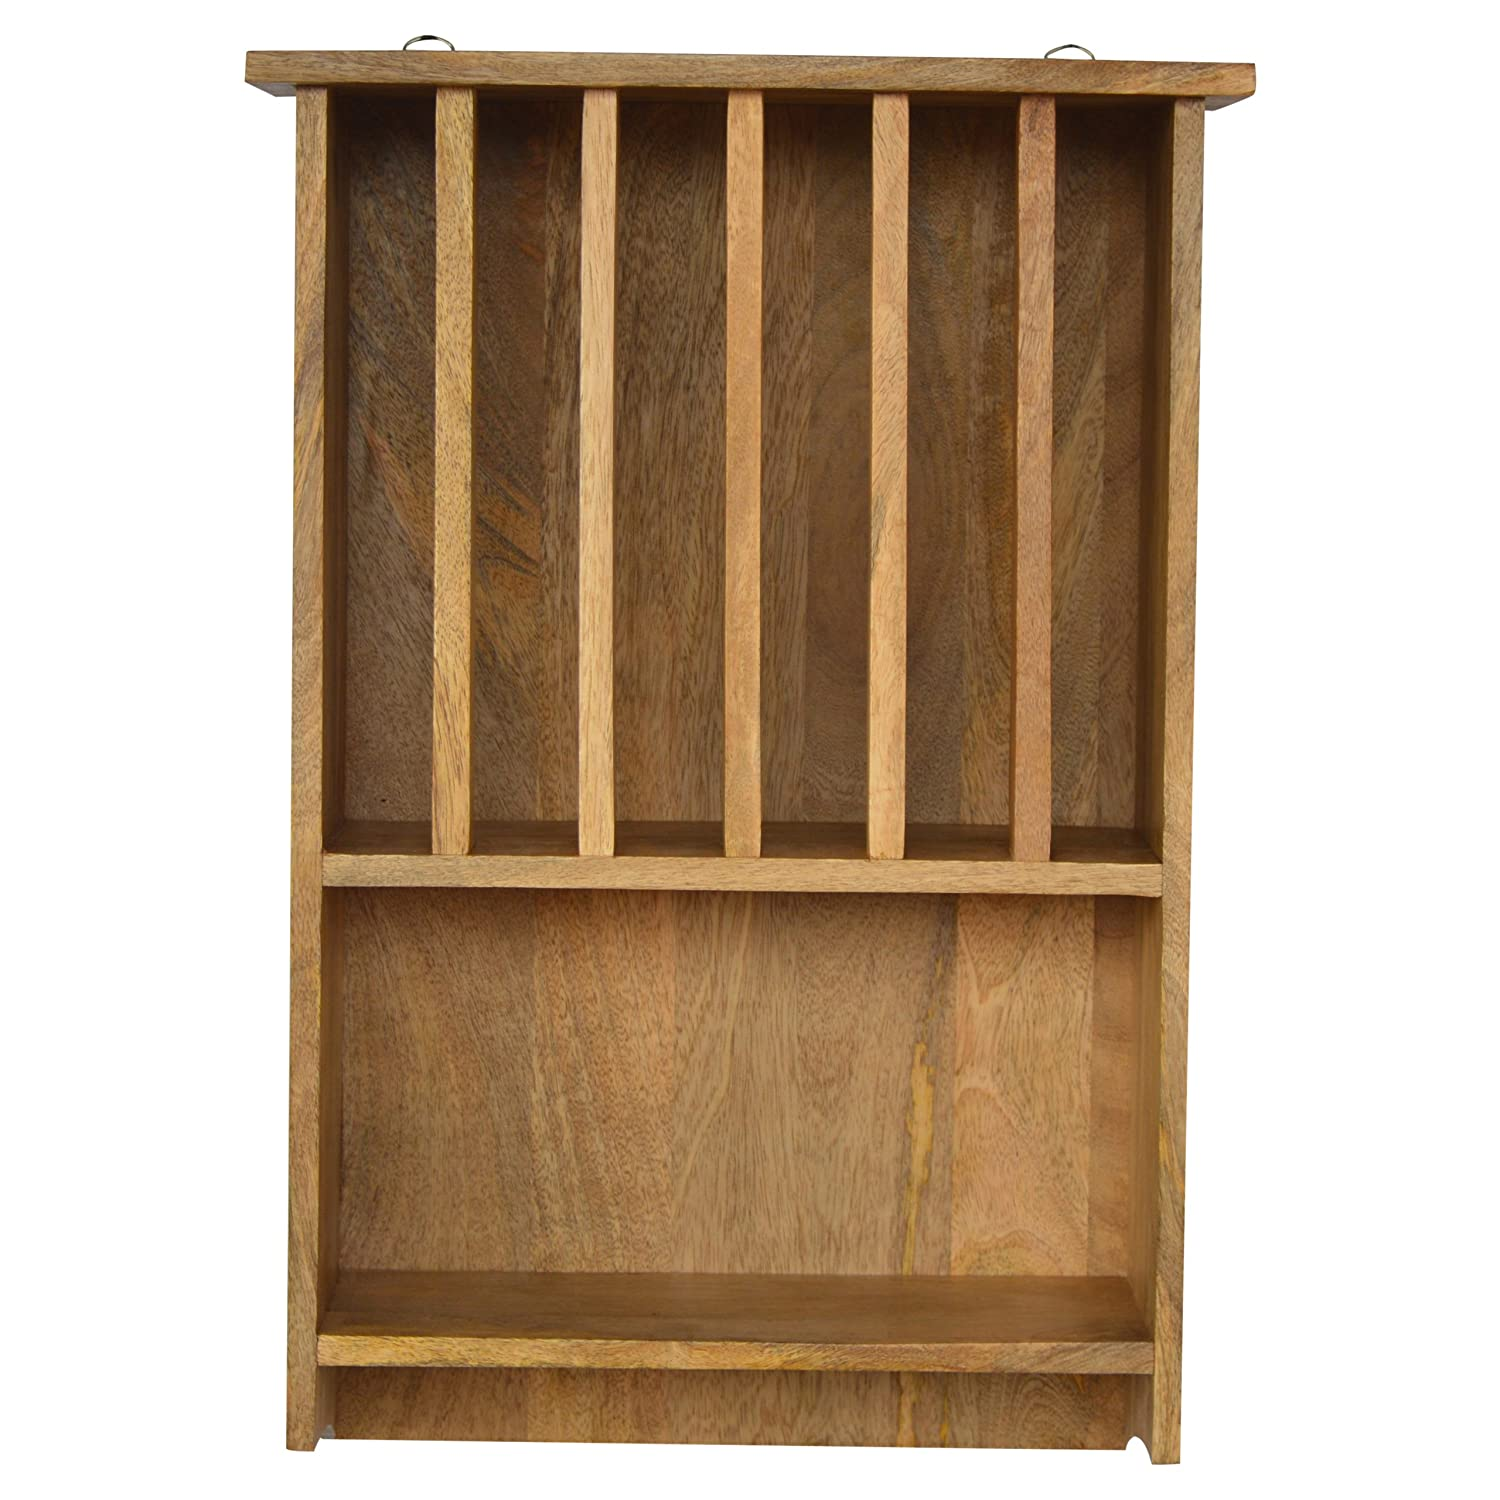 Artisan Furniture Wall Mounted Kitchen Plate Rack, Wood, Natural Oak Finish Global Vision Company IN169